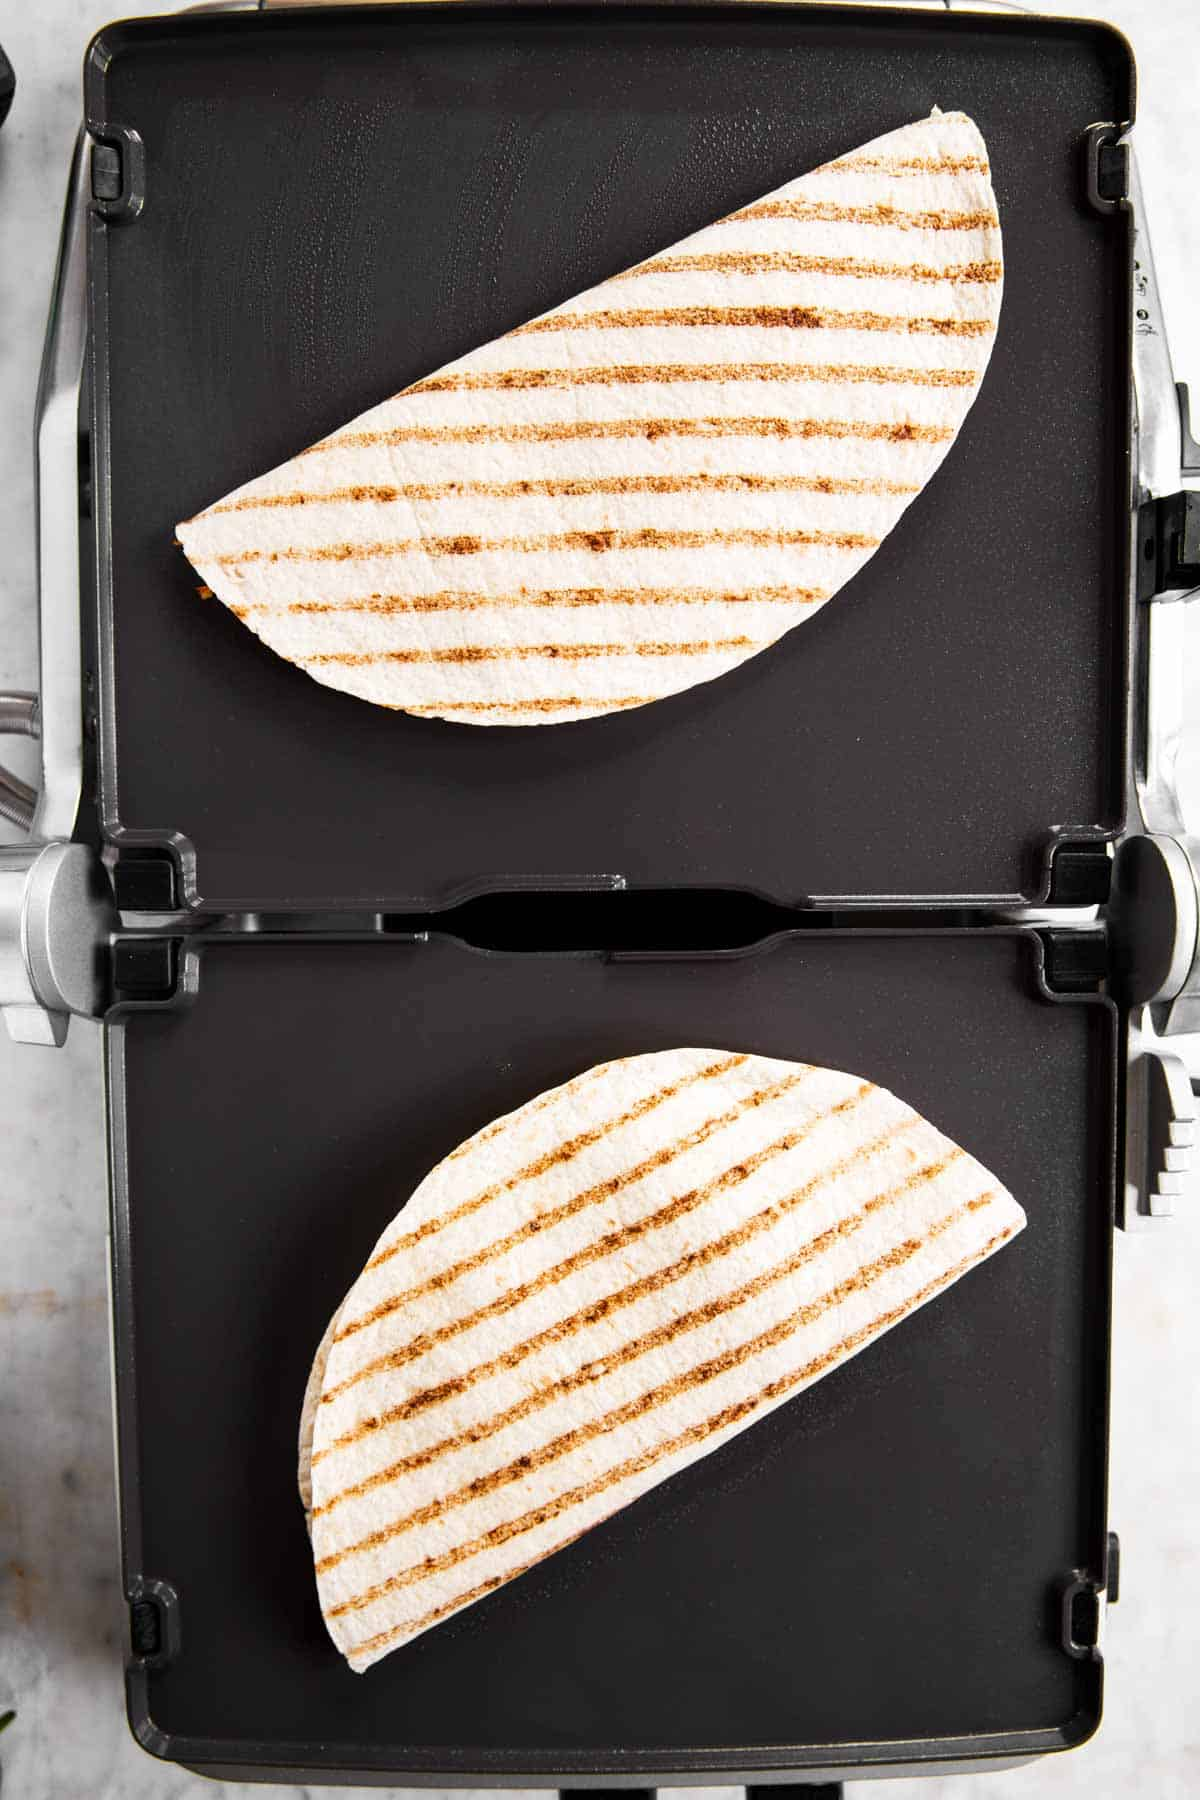 griddle with two quesadillas cooking